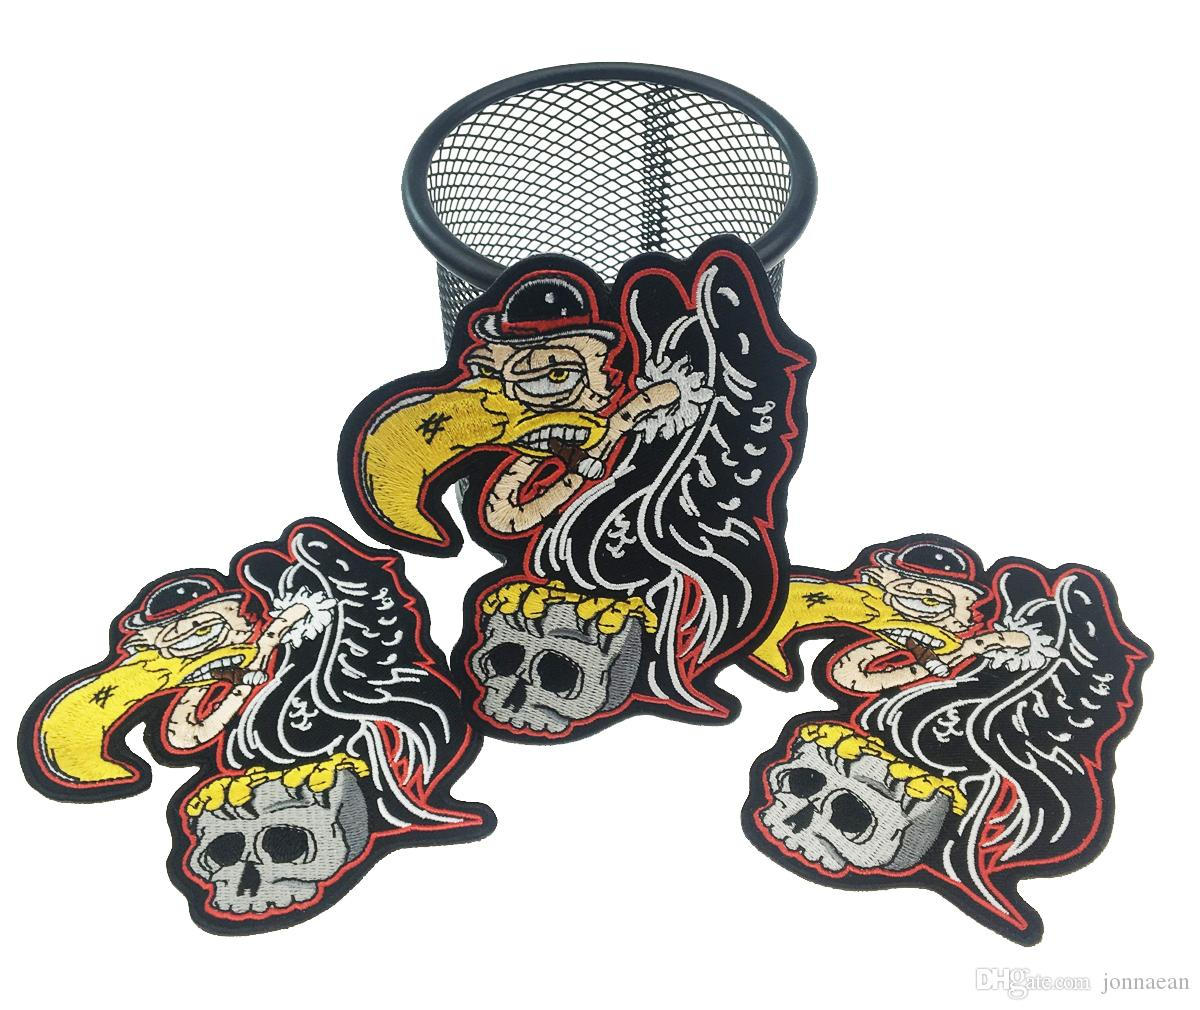 New Arrival EAGLE Grab Skull Embroidered Iron On Jacket Patch DIY Applique Accessory Sew On Badge Stitch Patch